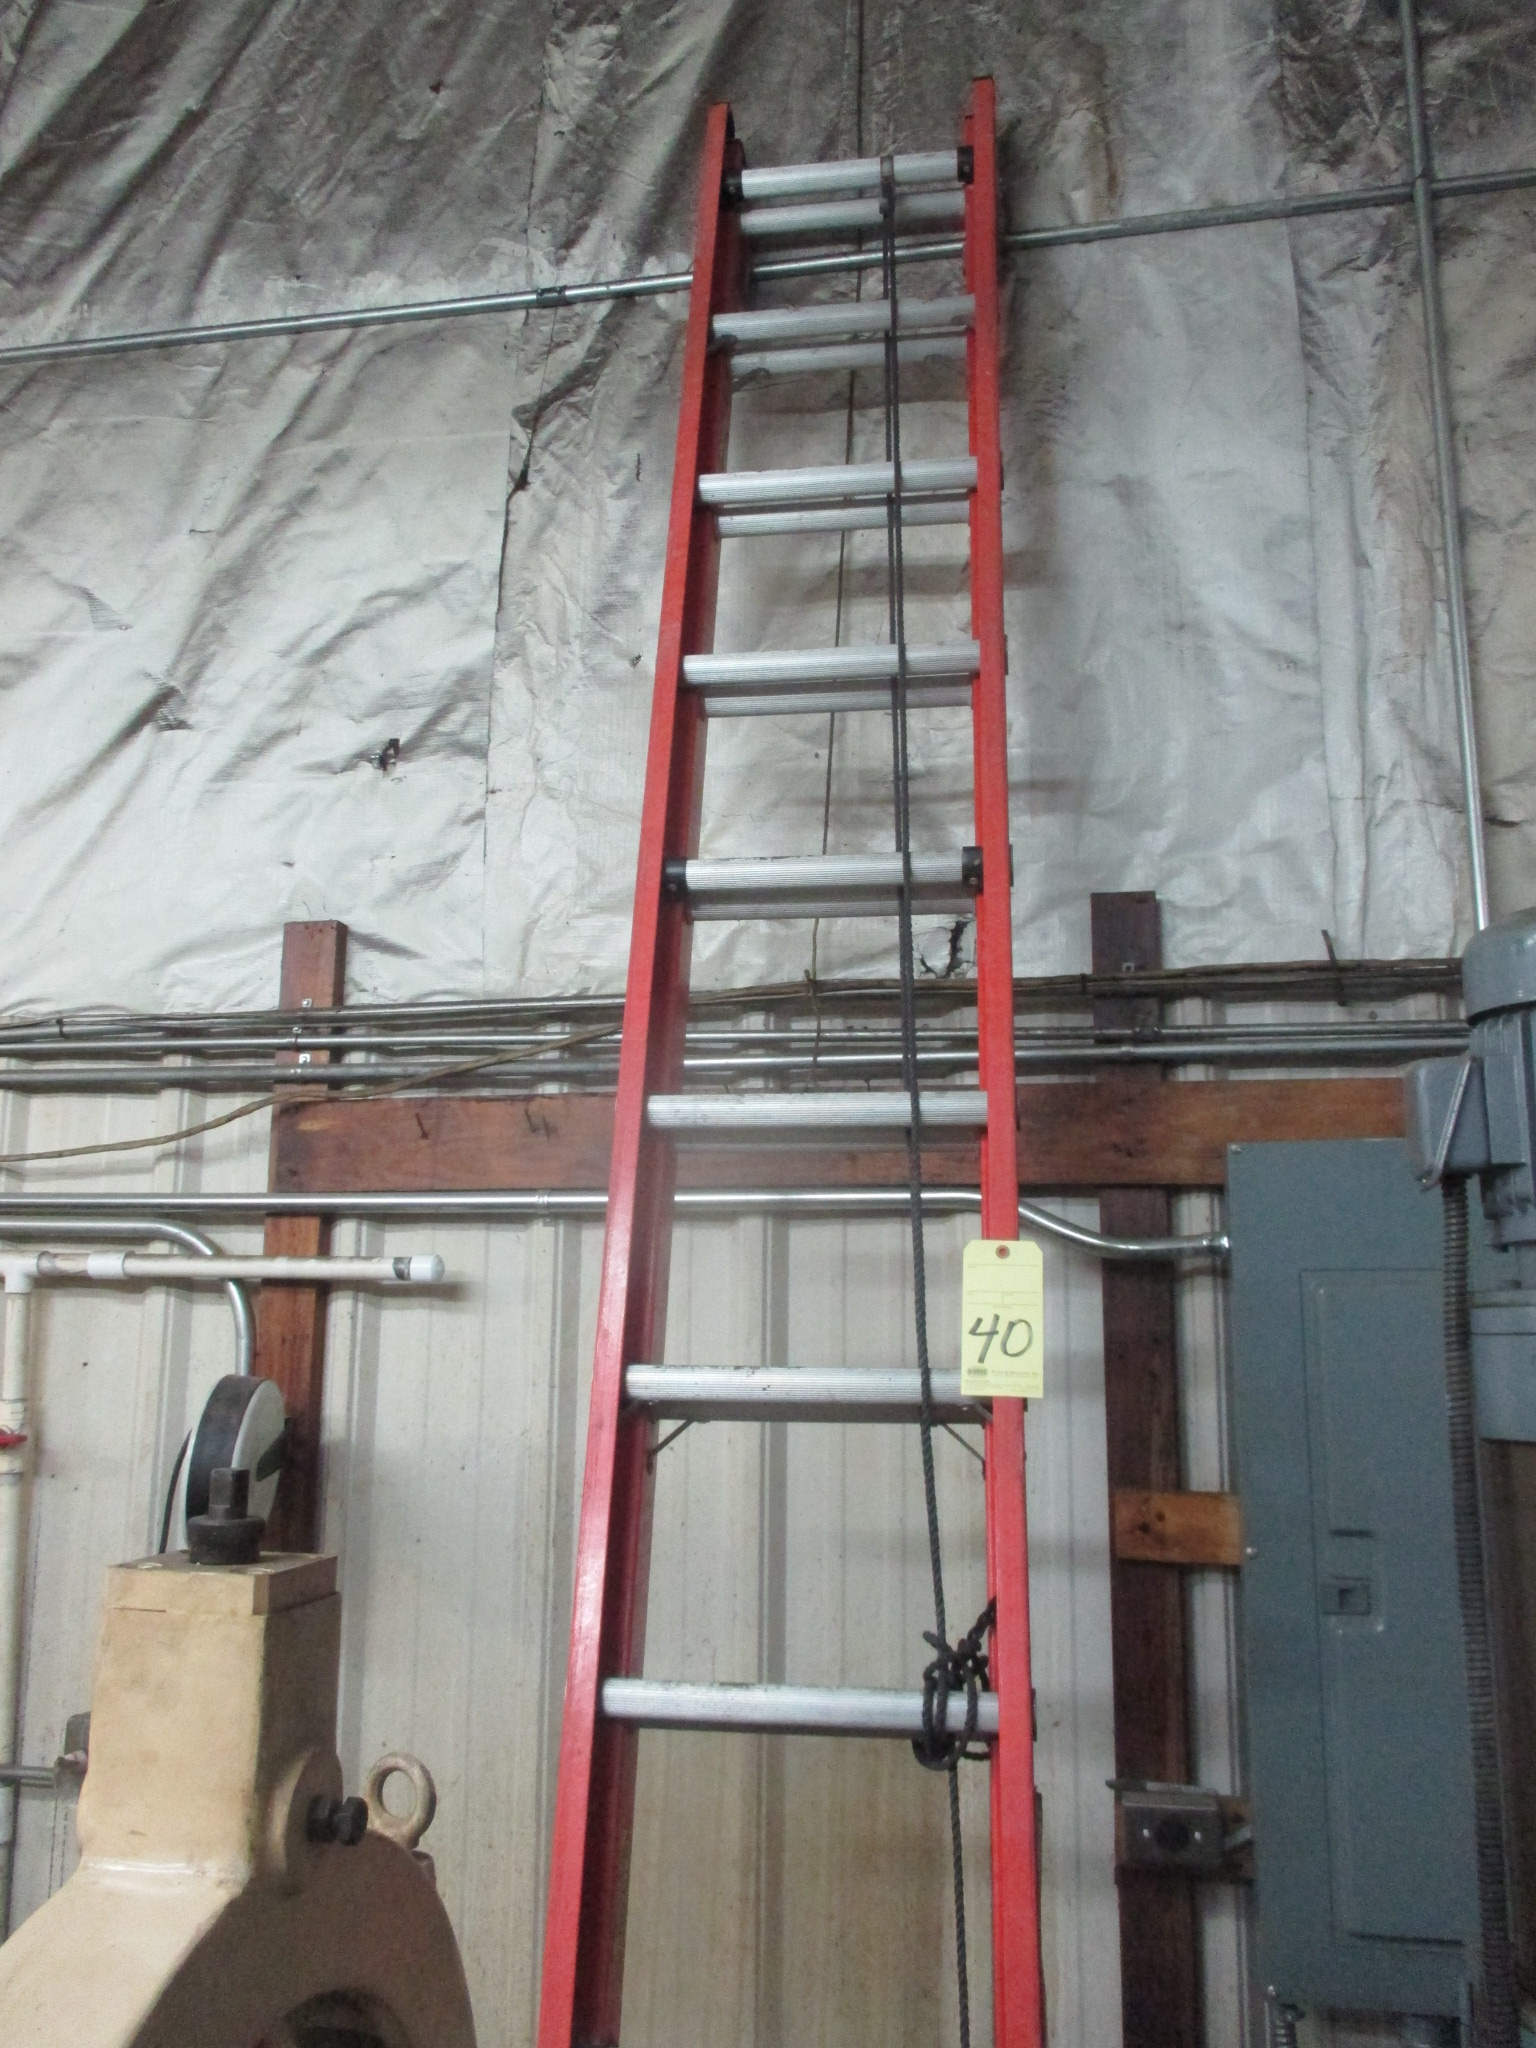 Lot 40 - LOT CONSISTING OF: Louisville extension ladder & step ladders